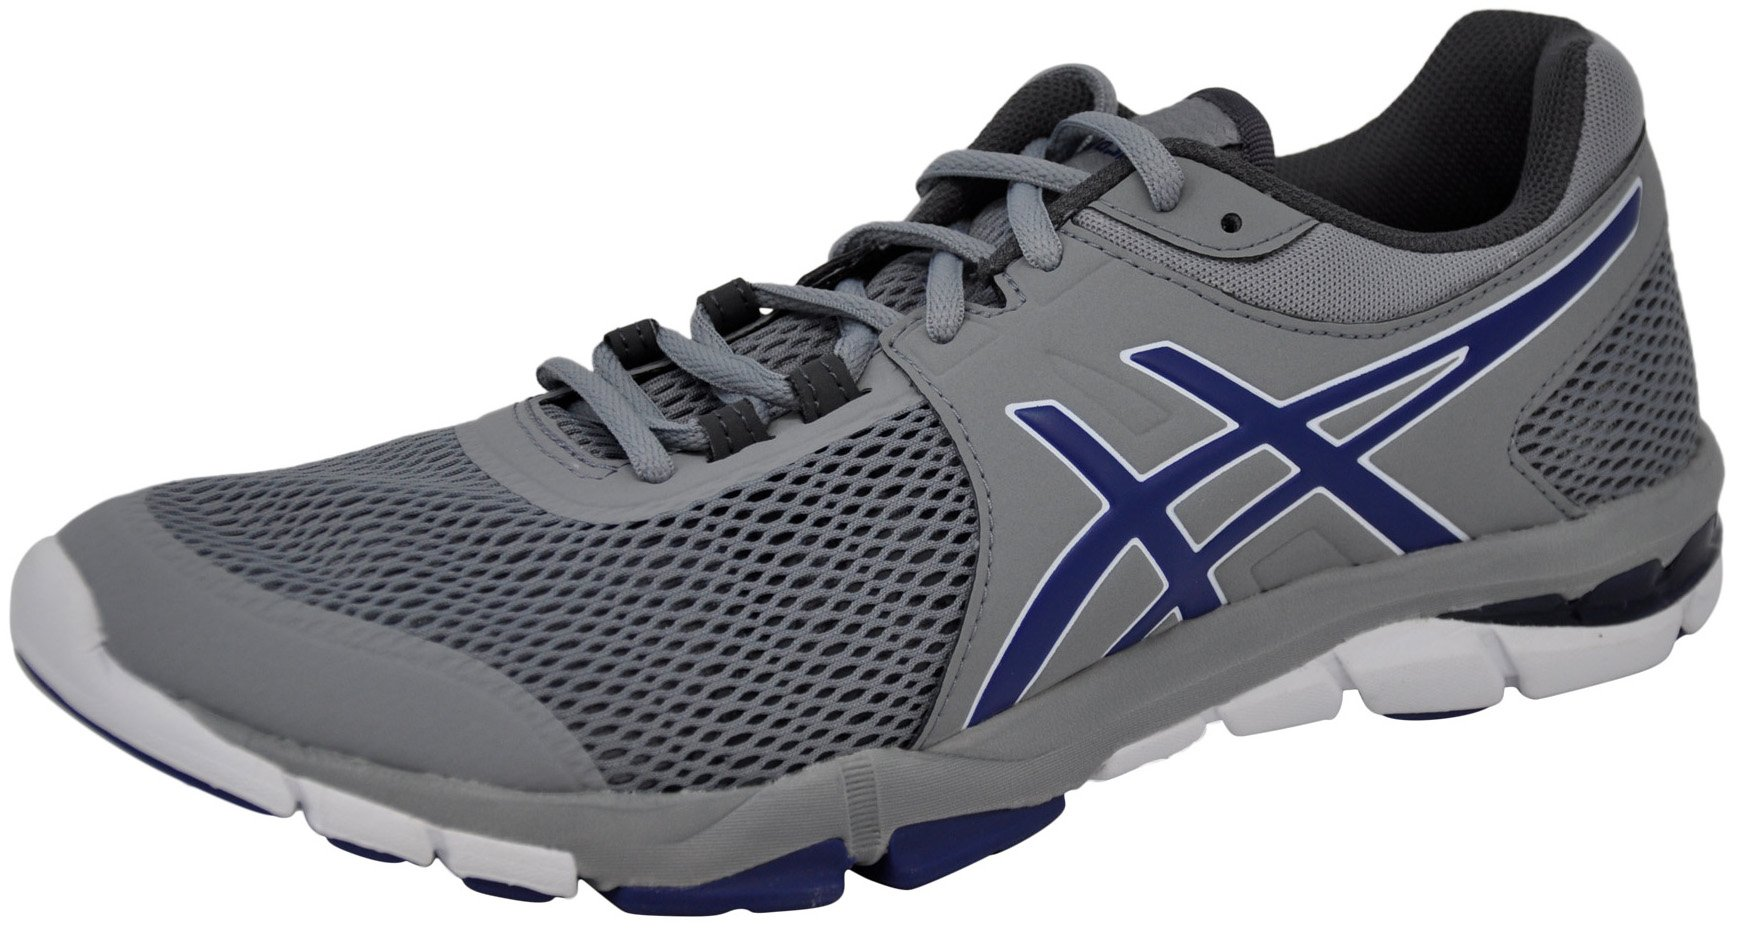 cad9e1a60 Galleon - ASICS Men's Gel-Craze TR 4 Cross-Trainer Shoe (12 D(M) US, Stone  Grey/Blue Print)